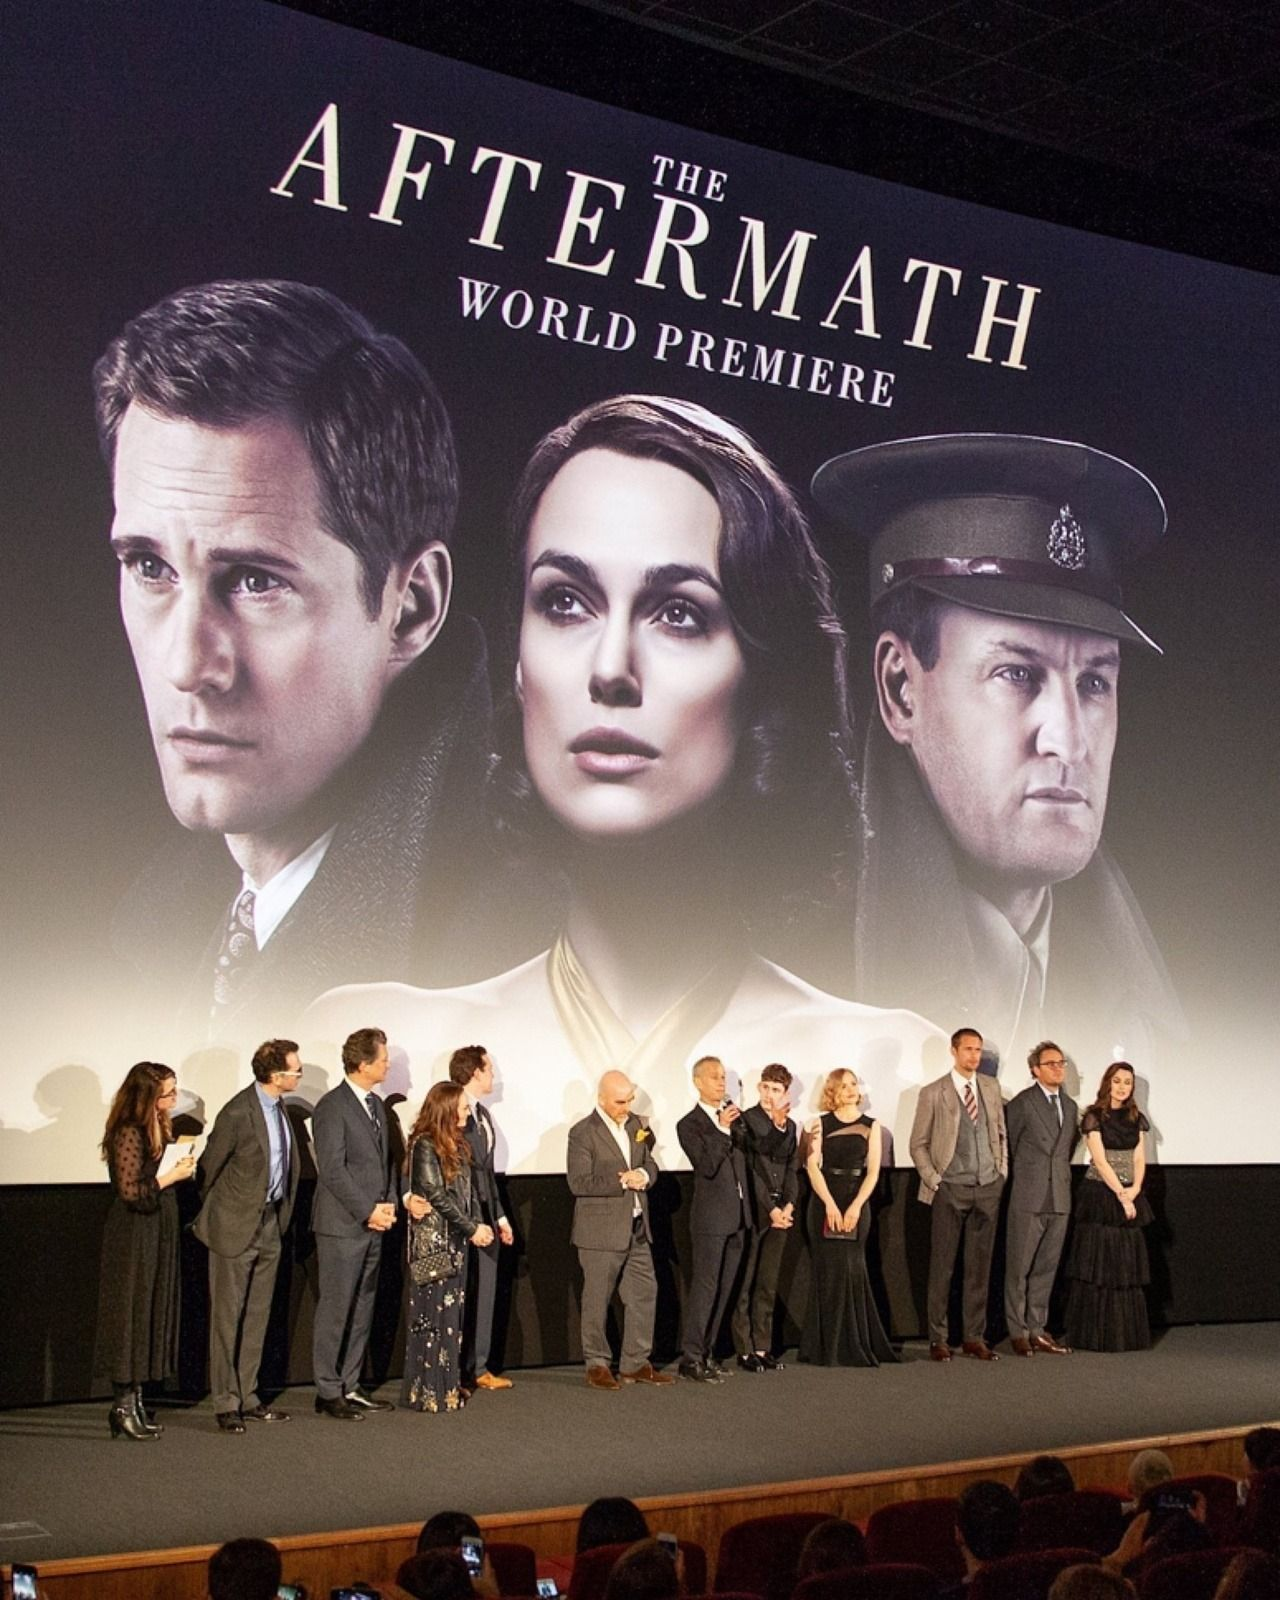 SkarsJoy — THE AFTERMATH cast at their world premiere in